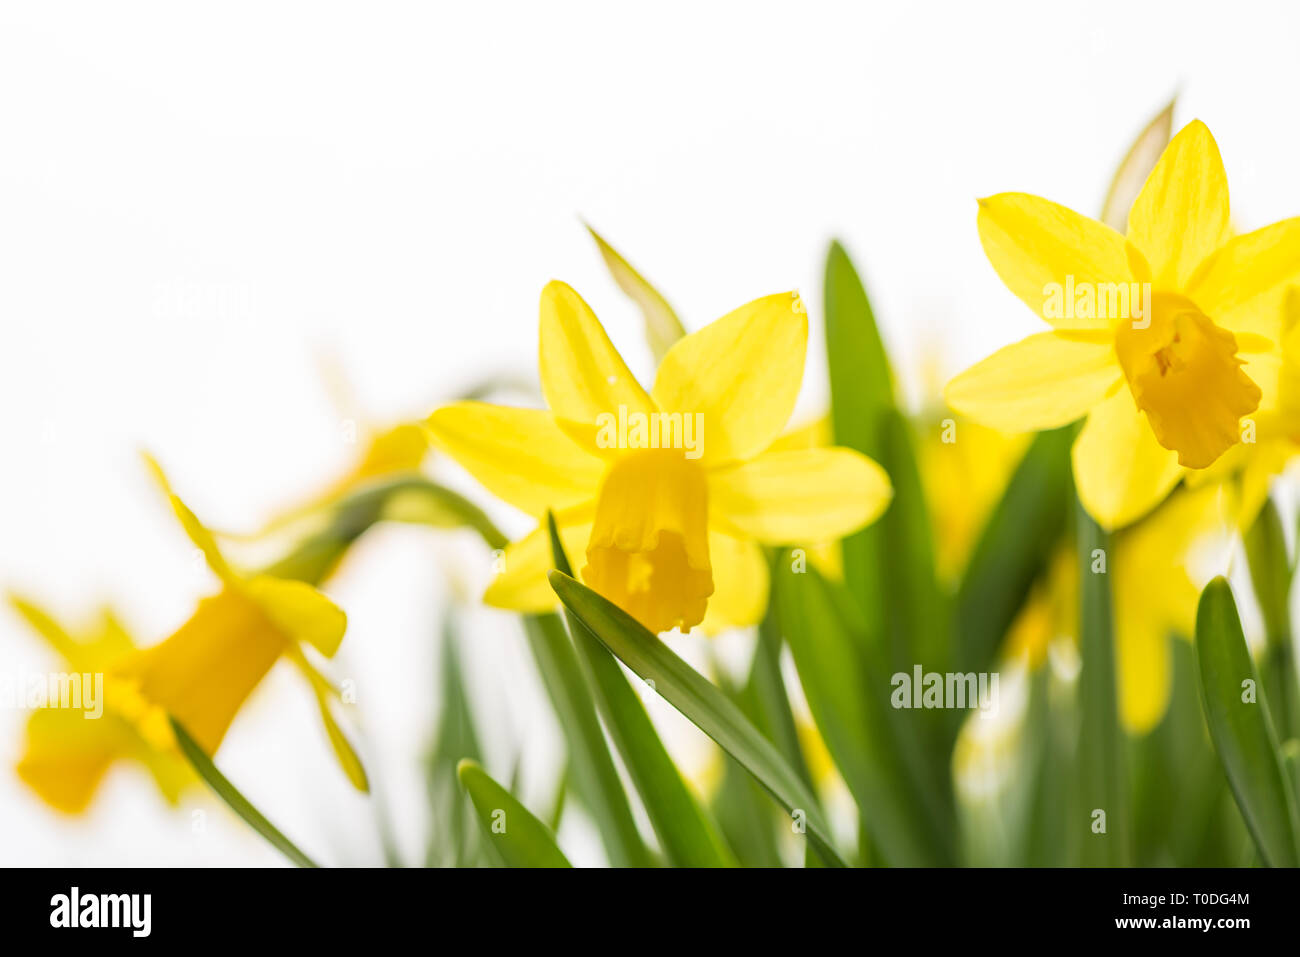 Daffodils flower in spring in front of white background Stock Photo